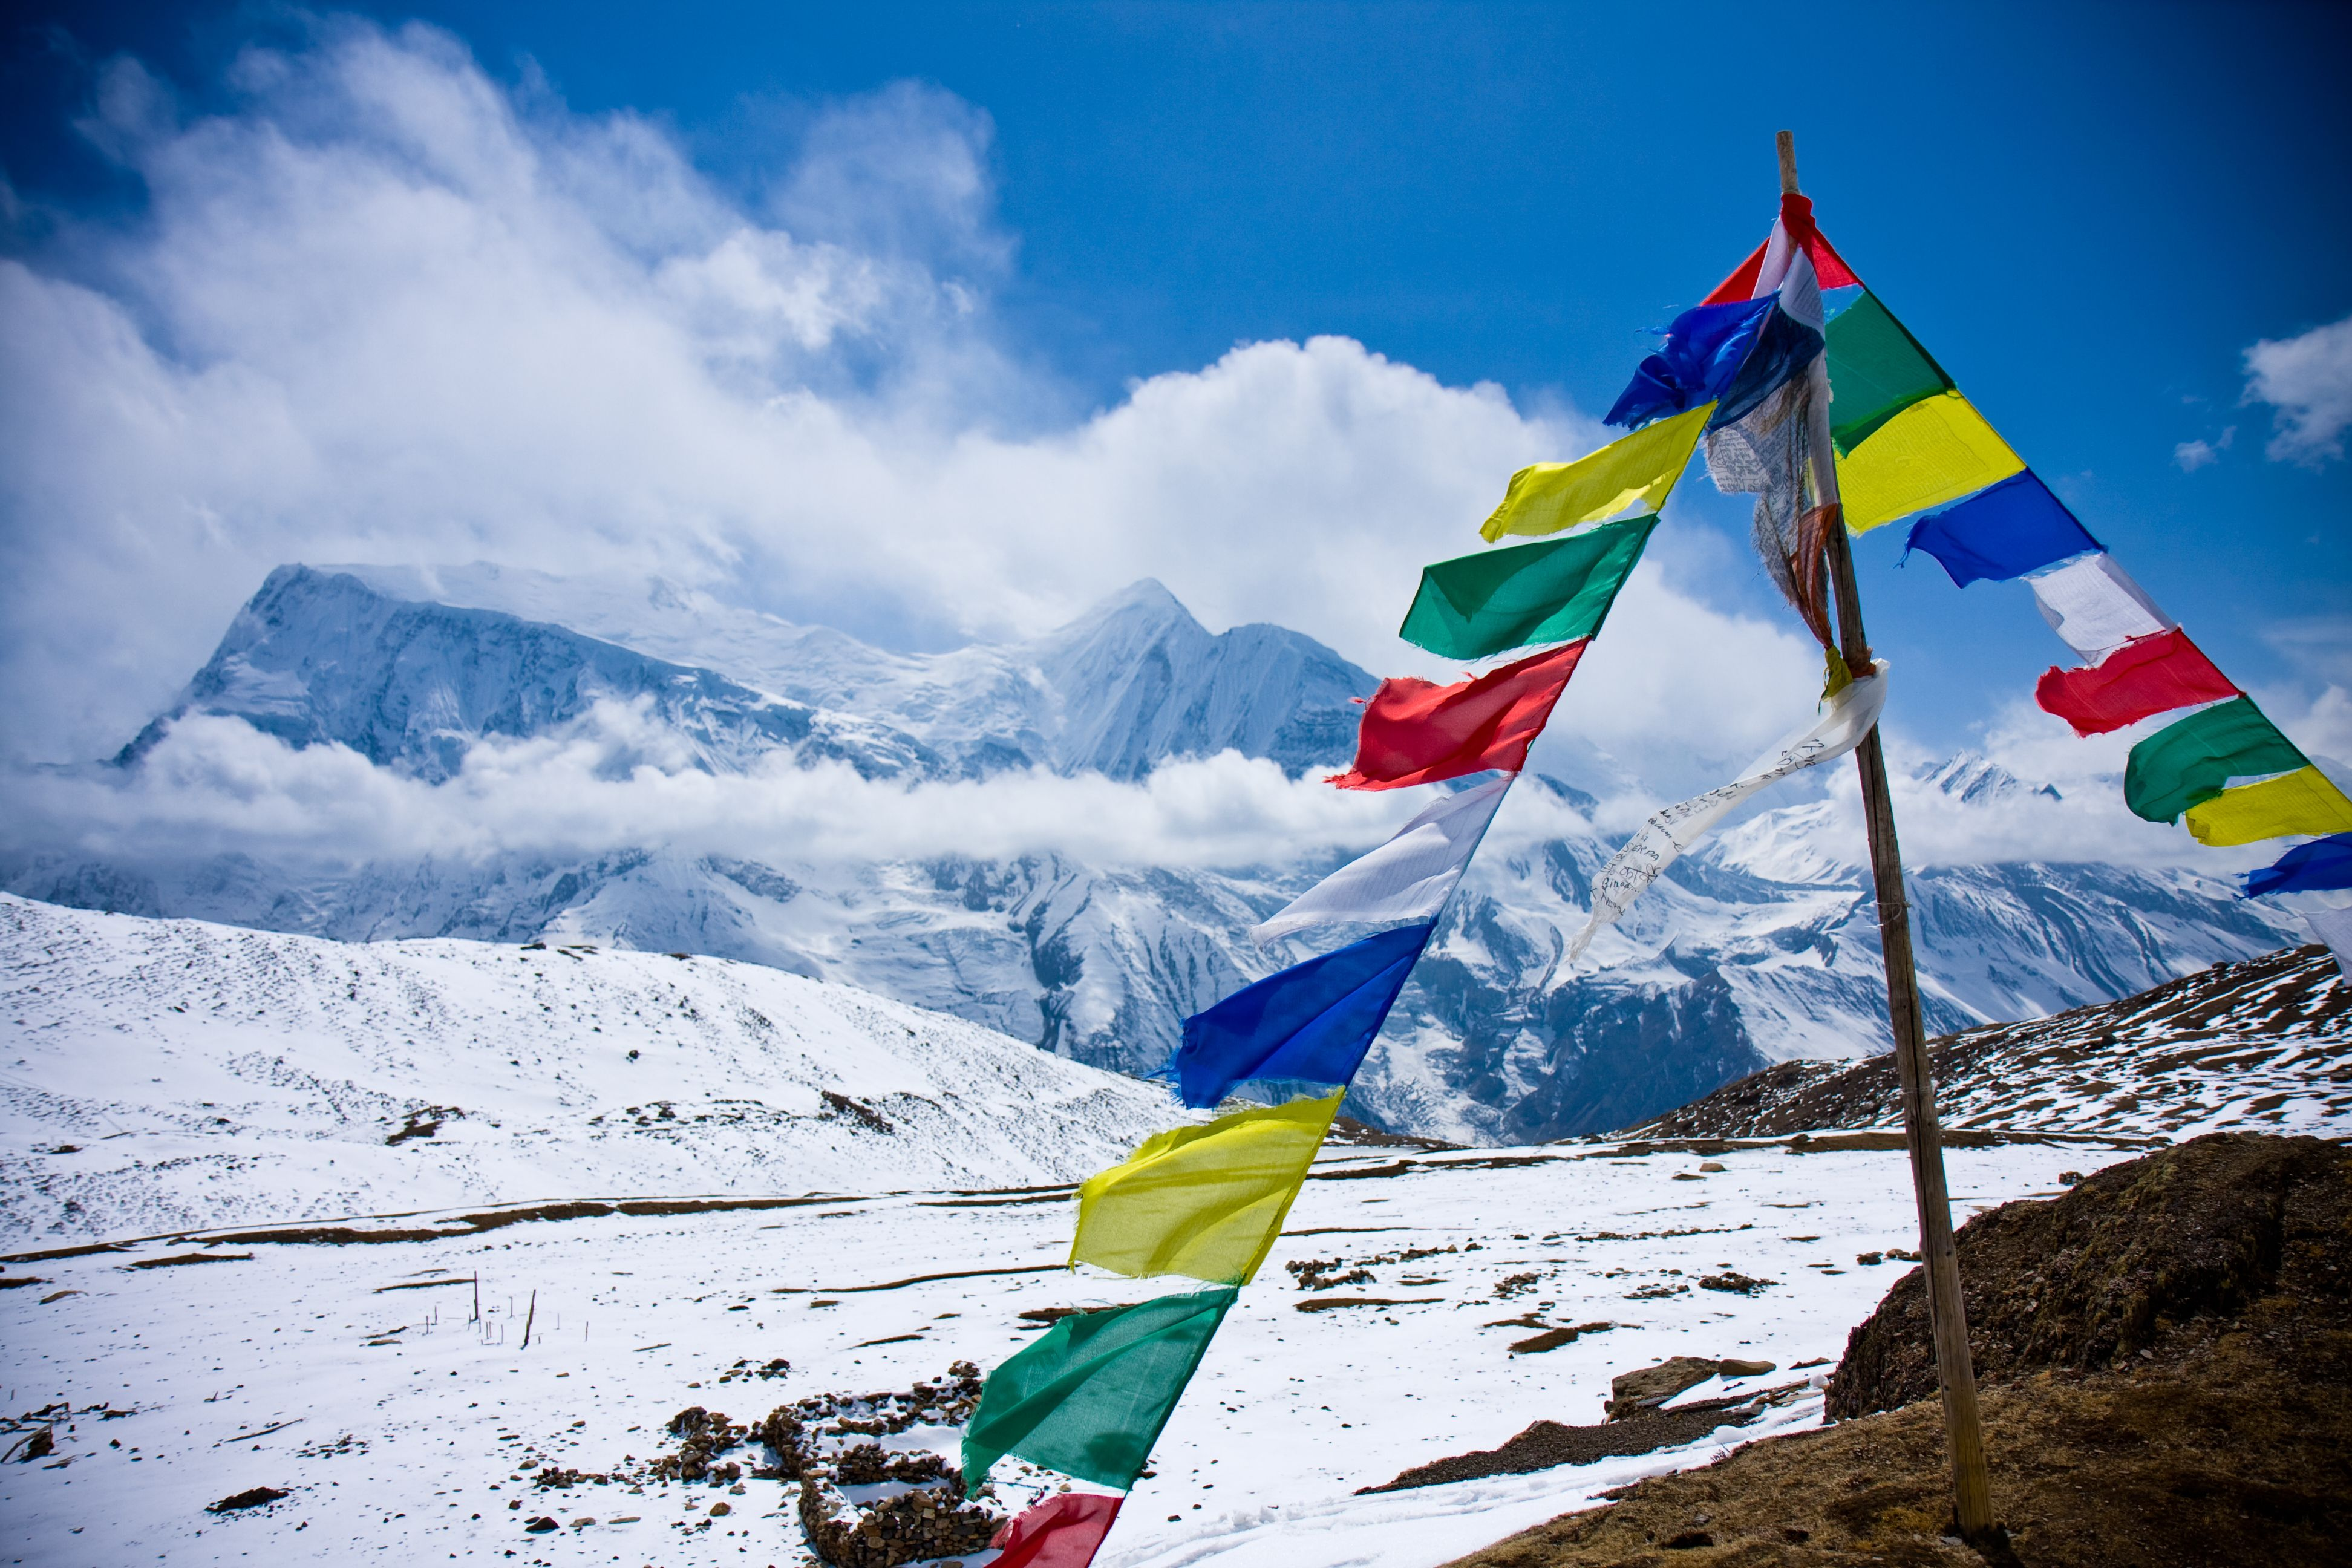 3888x2592 7 things not to miss while trekking in Nepal